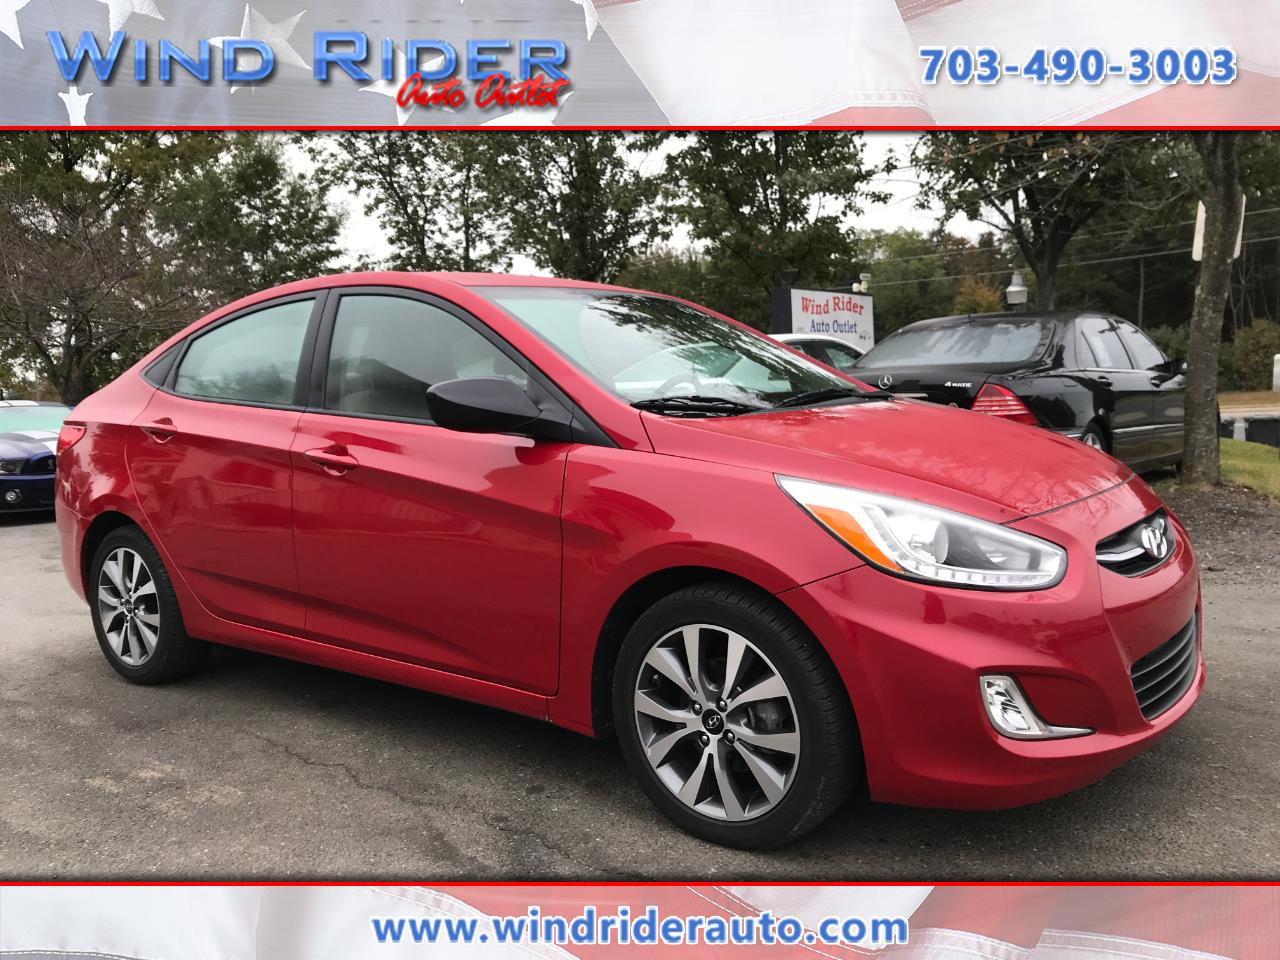 used 2016 hyundai accent se sedan auto for sale in woodbridge va 22192 wind rider auto outlet. Black Bedroom Furniture Sets. Home Design Ideas